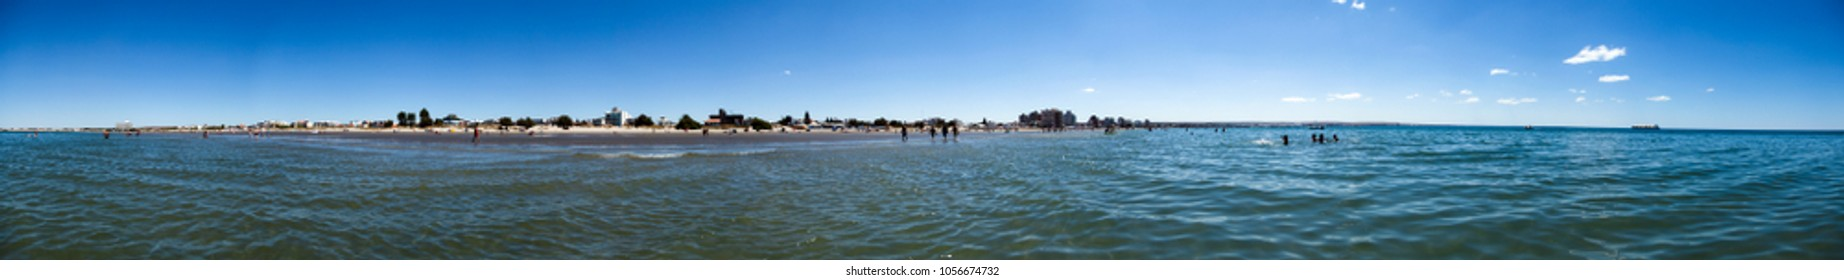 Panoramic view of the beach of Puerto Madryn, Patagonia, Argentina.